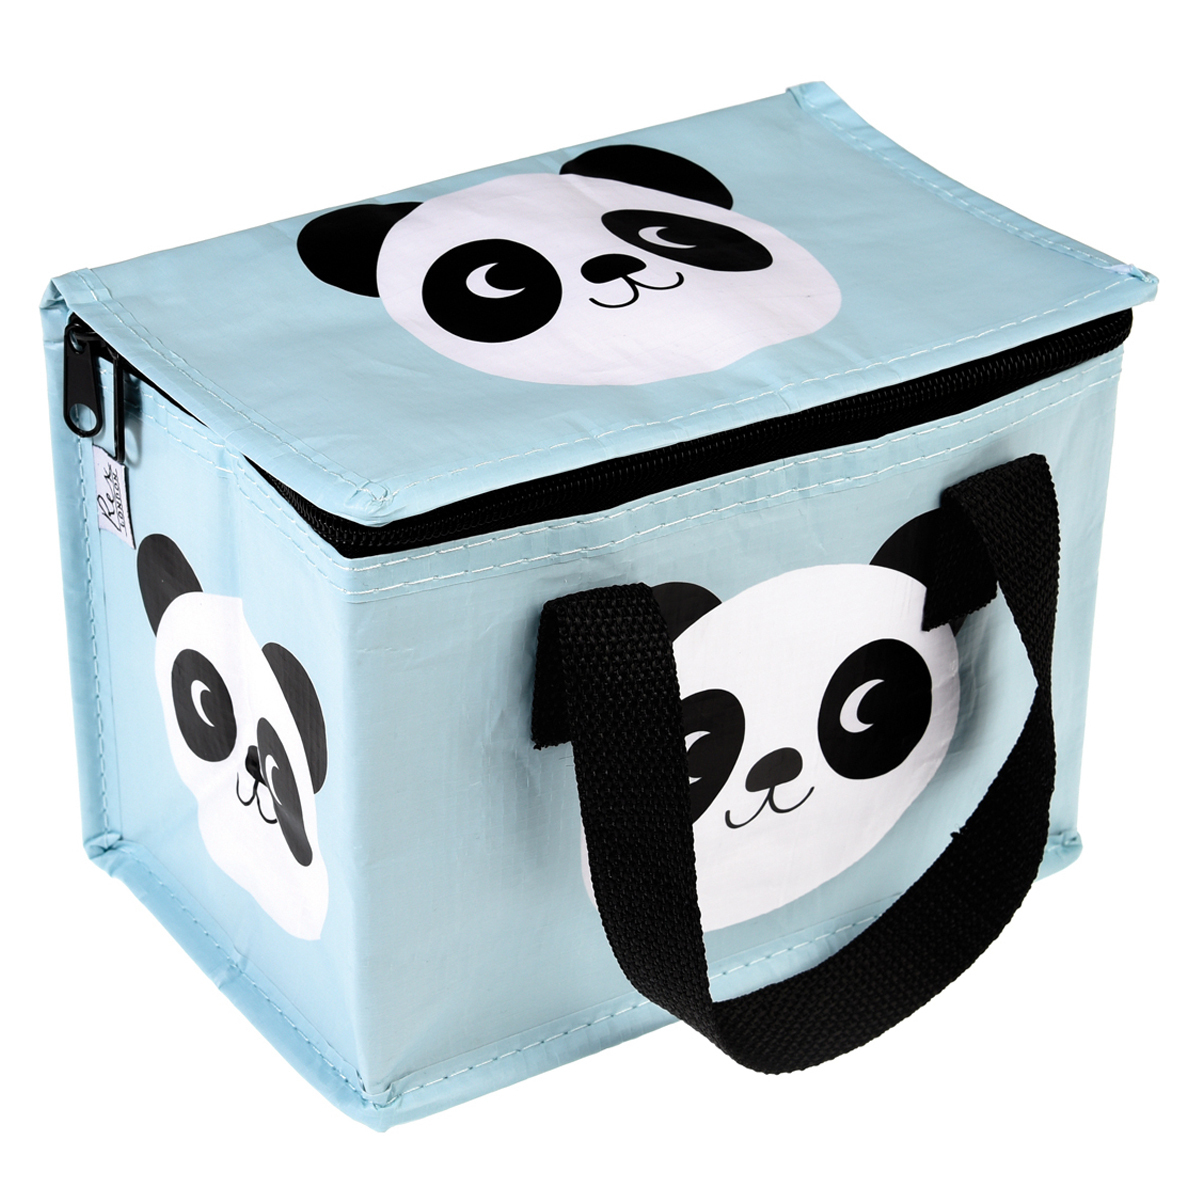 Sac isotherme Lunch Bag - Miko le Panda